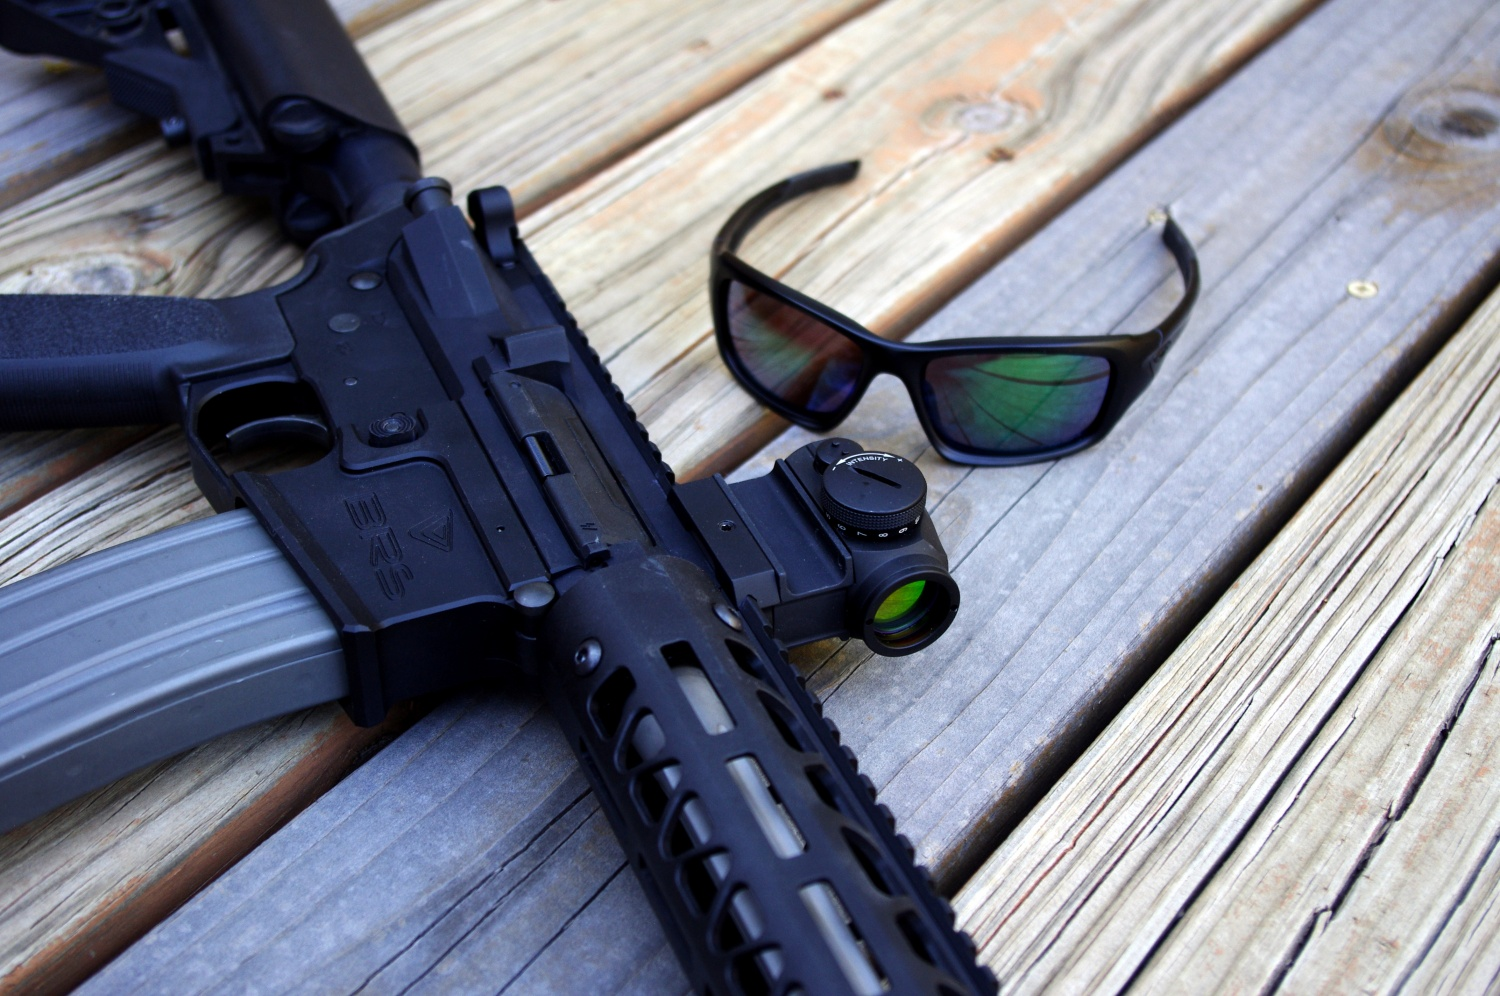 d58ad36fb6 Aimpoint T1 and Oakley PRIZM MARITIME sunglasses. The Aimpoint T1 did fine